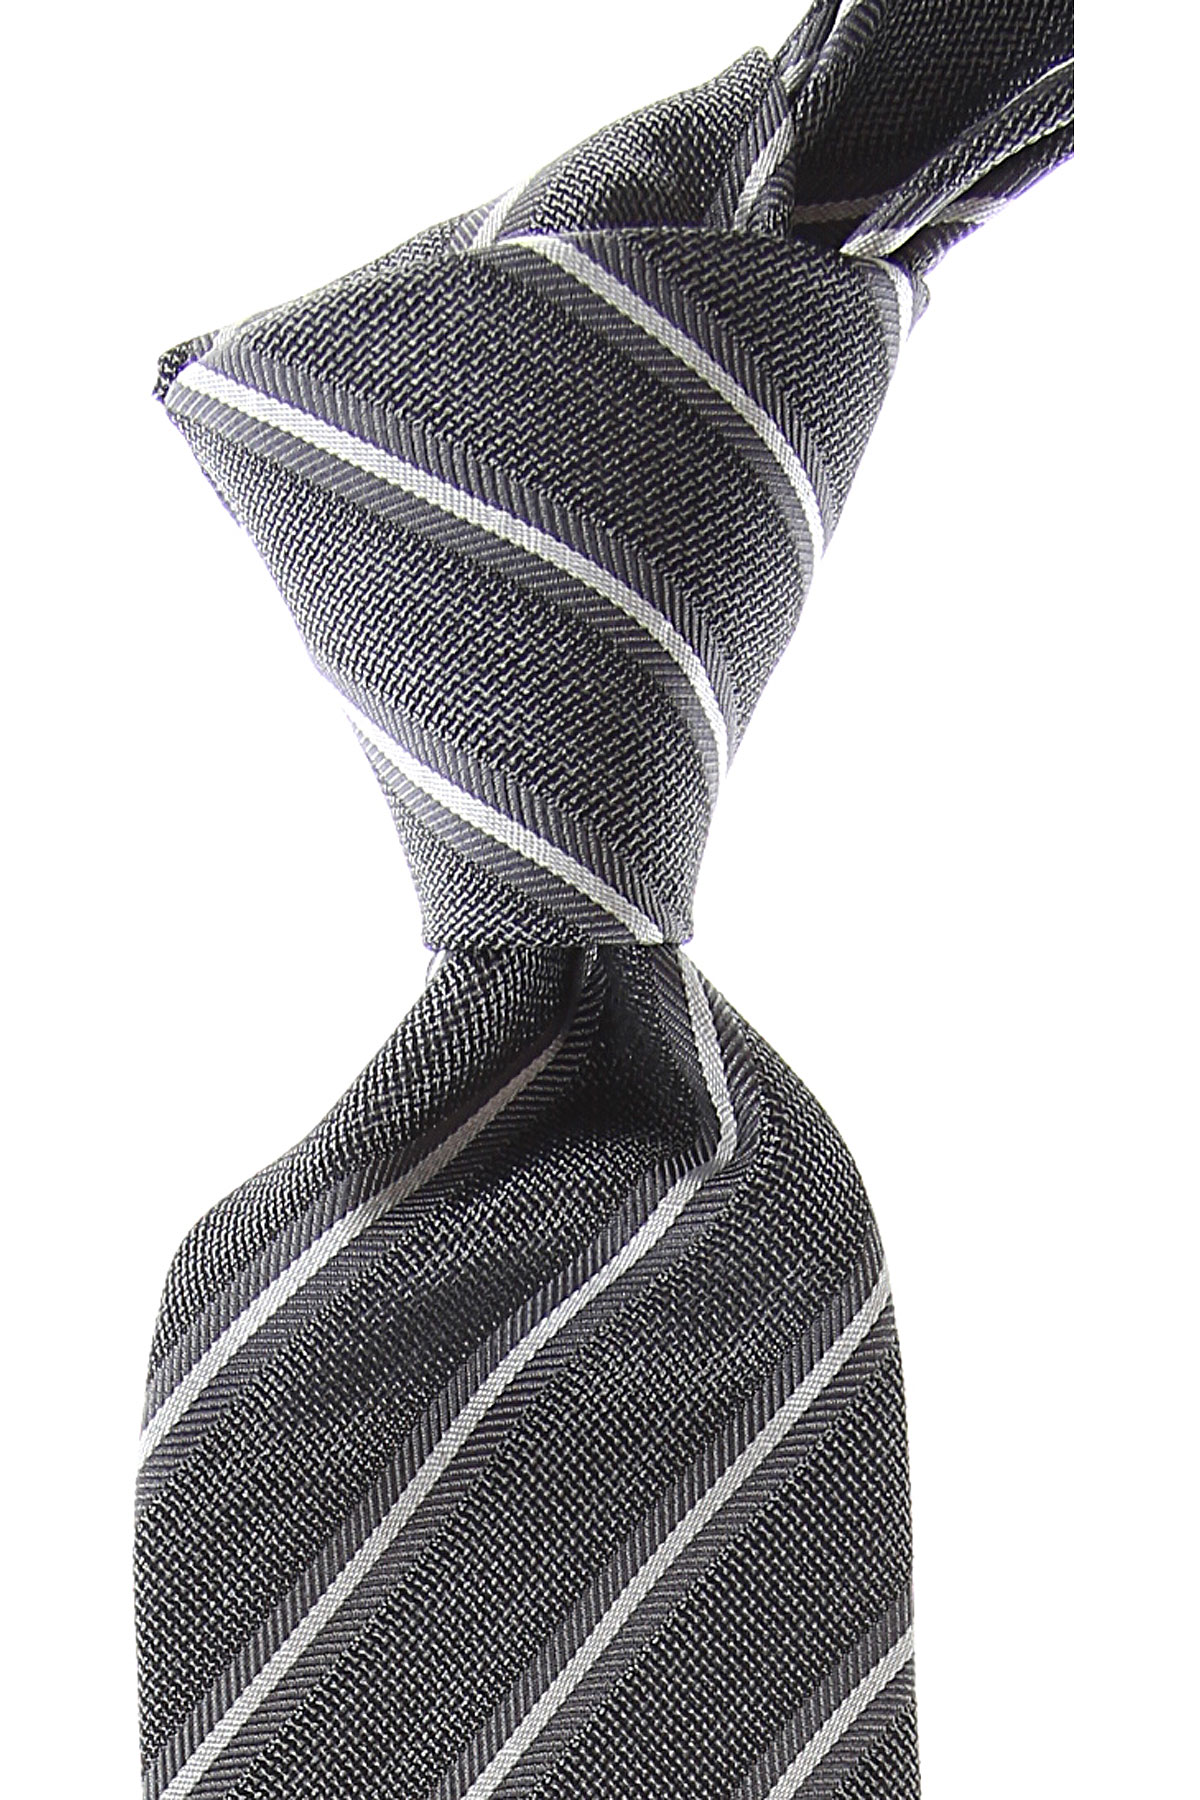 Giorgio_Armani_Ties_On_Sale_Metallic_Grey_Silk_2019